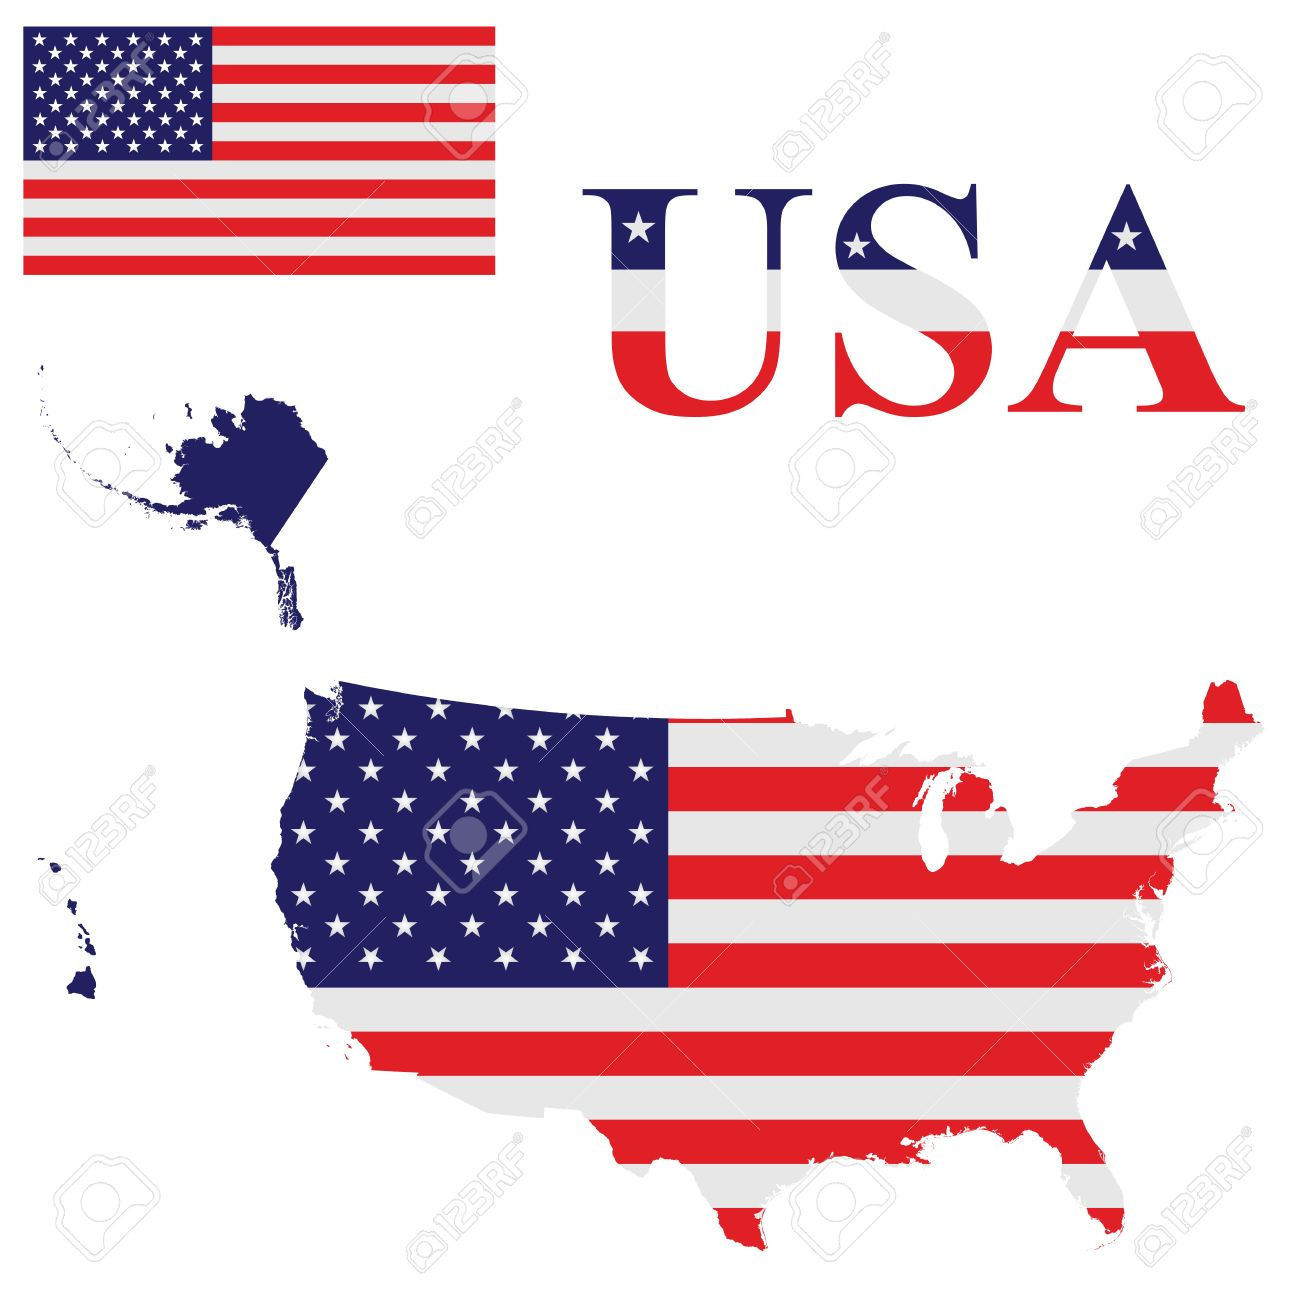 Flag Of The United States Of America Including Alaska And Hawaii - Hawaii map usa states